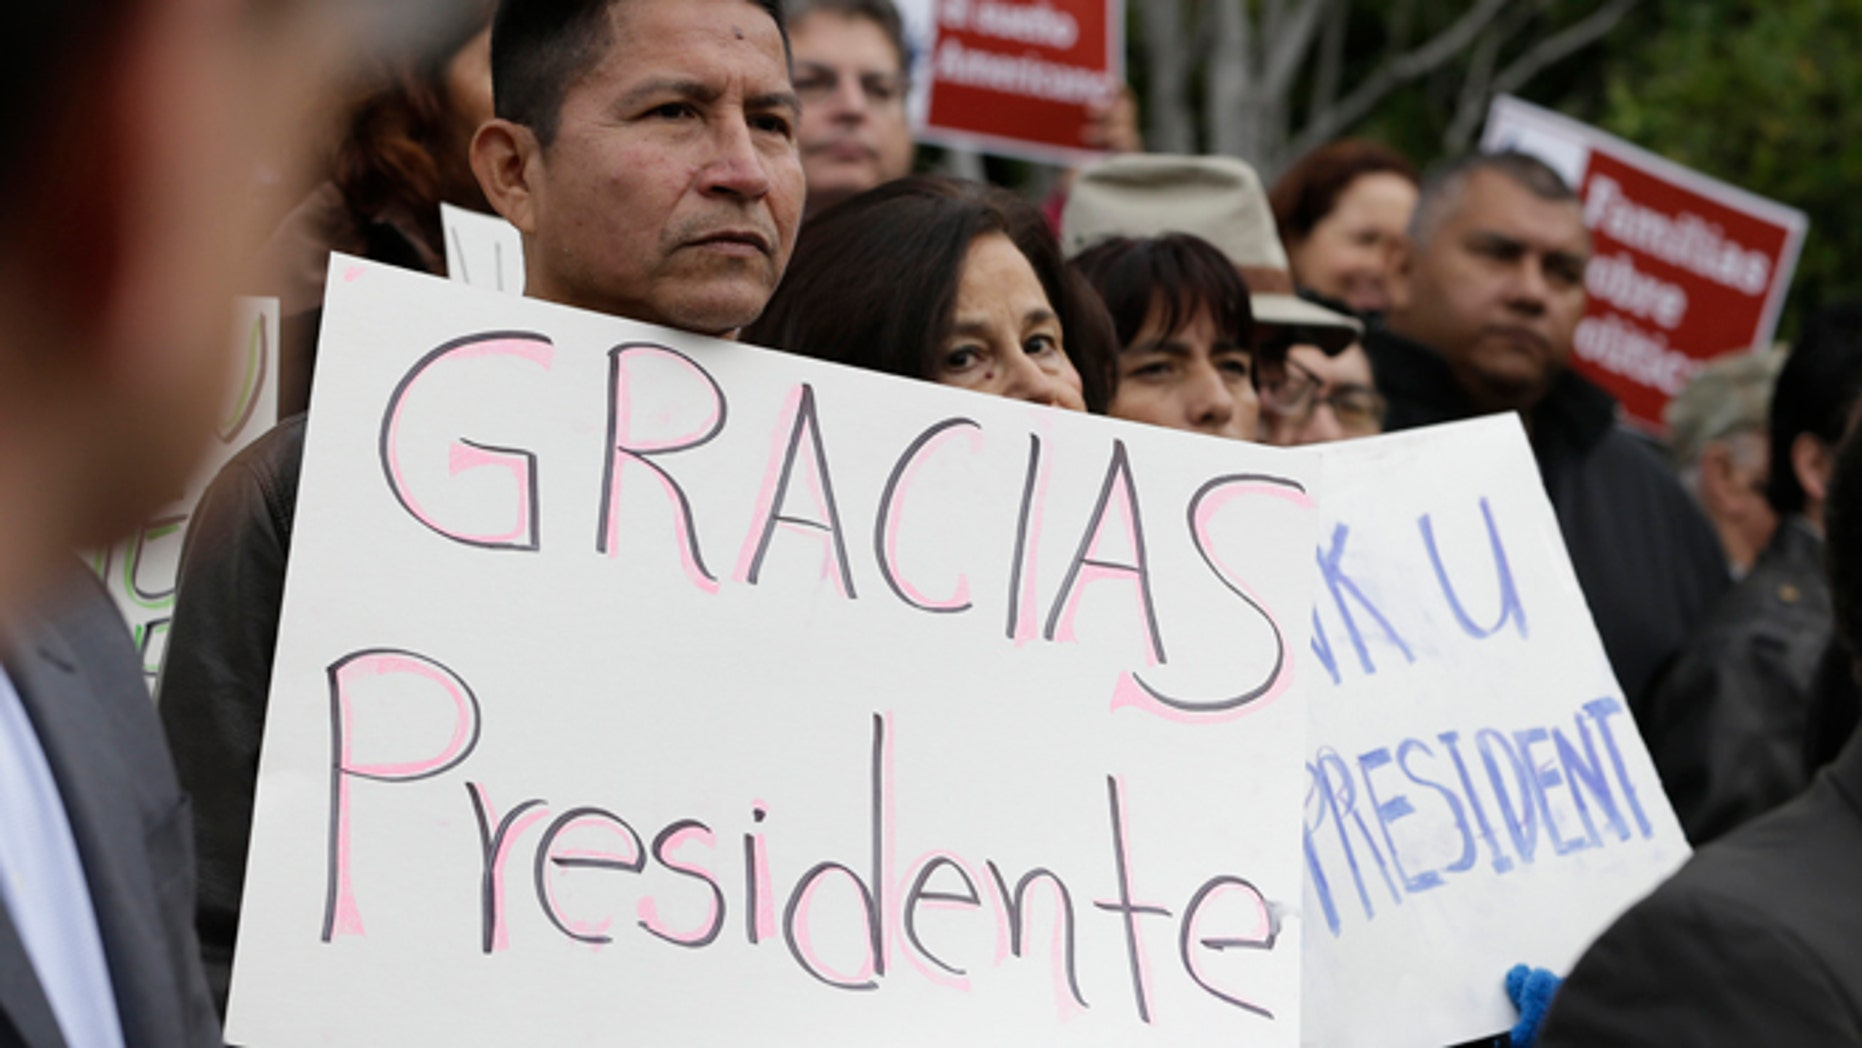 Sebastian Montalvan, left, who has been living in the country illegally, joined dozens of others who are here illegally, as well as activists and supporters to celebrate President Barack  Obama's executive action on illegal immigration, at a at a news conference in Sacramento, Calif., Friday, Nov. 21, 2014.(AP Photo/Rich Pedroncelli)